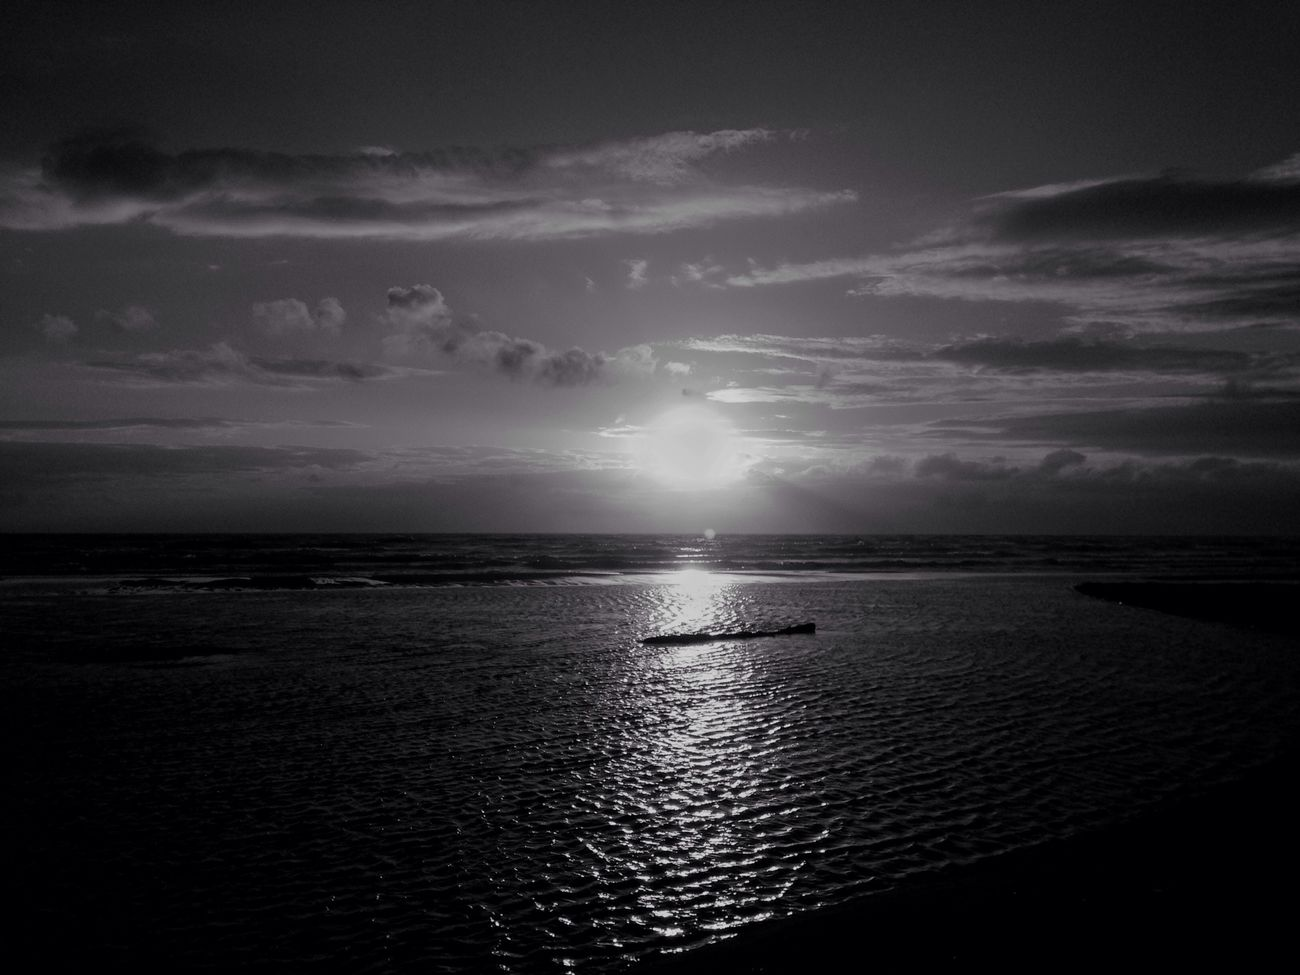 IPhone IPhoneography Mobilephotography Horizon Over Water Surf Surf Photography Sky EyeEm Nature Lover Sanset Sea Light And Shadow Evning Sky Sanset Collection Reflection Beauty In Nature EvningGlow Sunlight And Shadow Horizon Beach Nature Wave Sunset BW Collection Bw Photography Monochrome